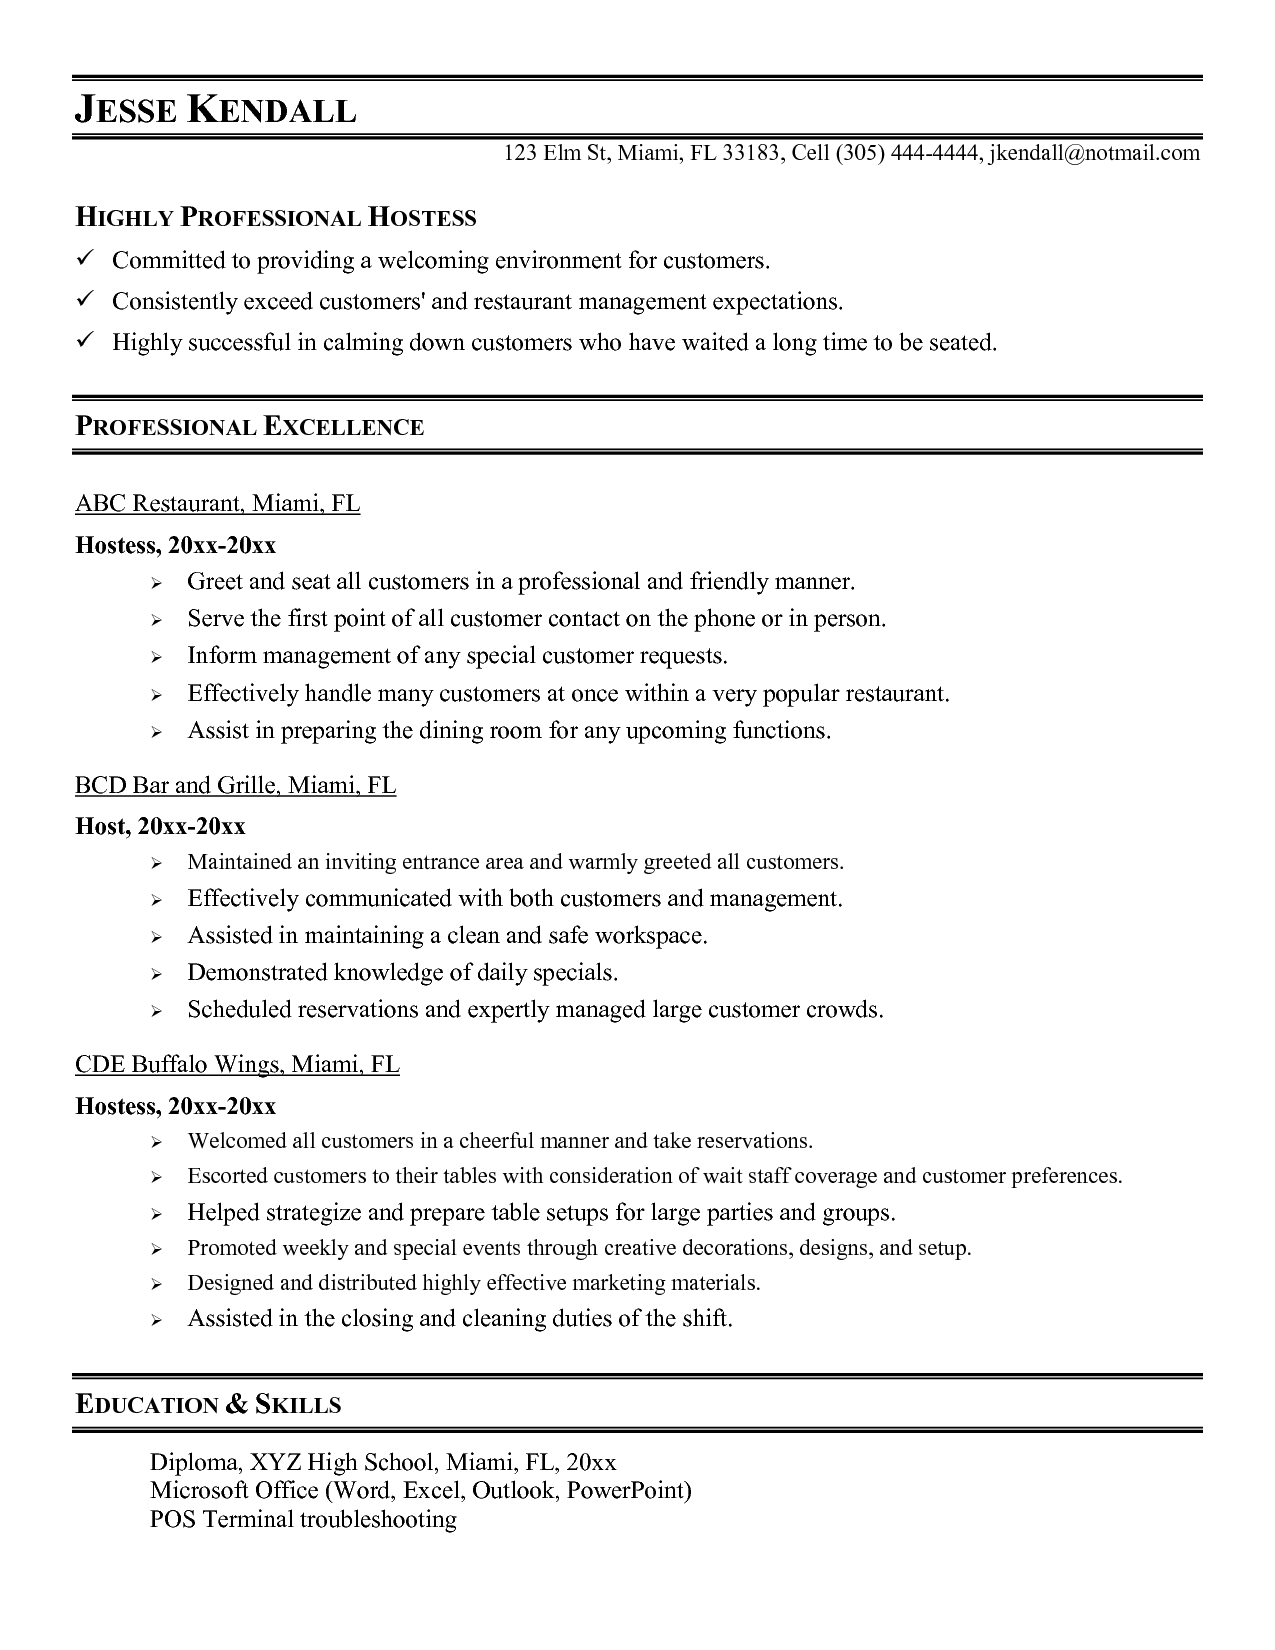 examples of a hostess resume best online resume builder examples of a hostess resume resume examples and tips snagajob host job description resume restaurant hostess